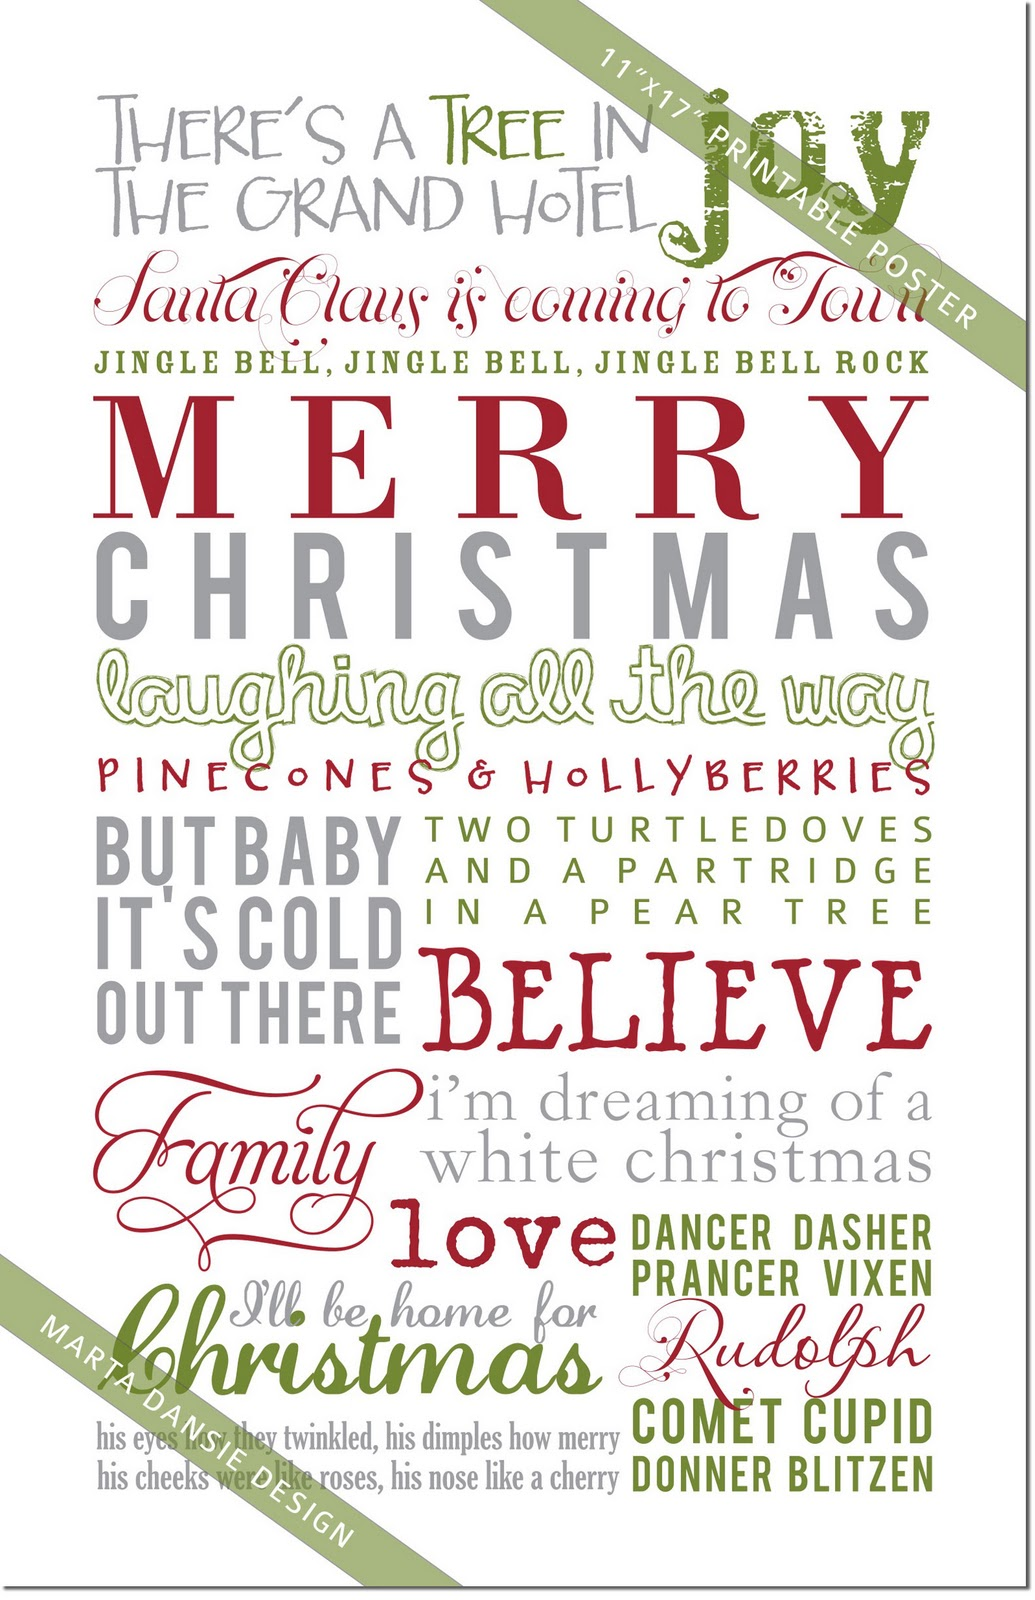 marta writes: a very merry printable christmas poster + giveaway